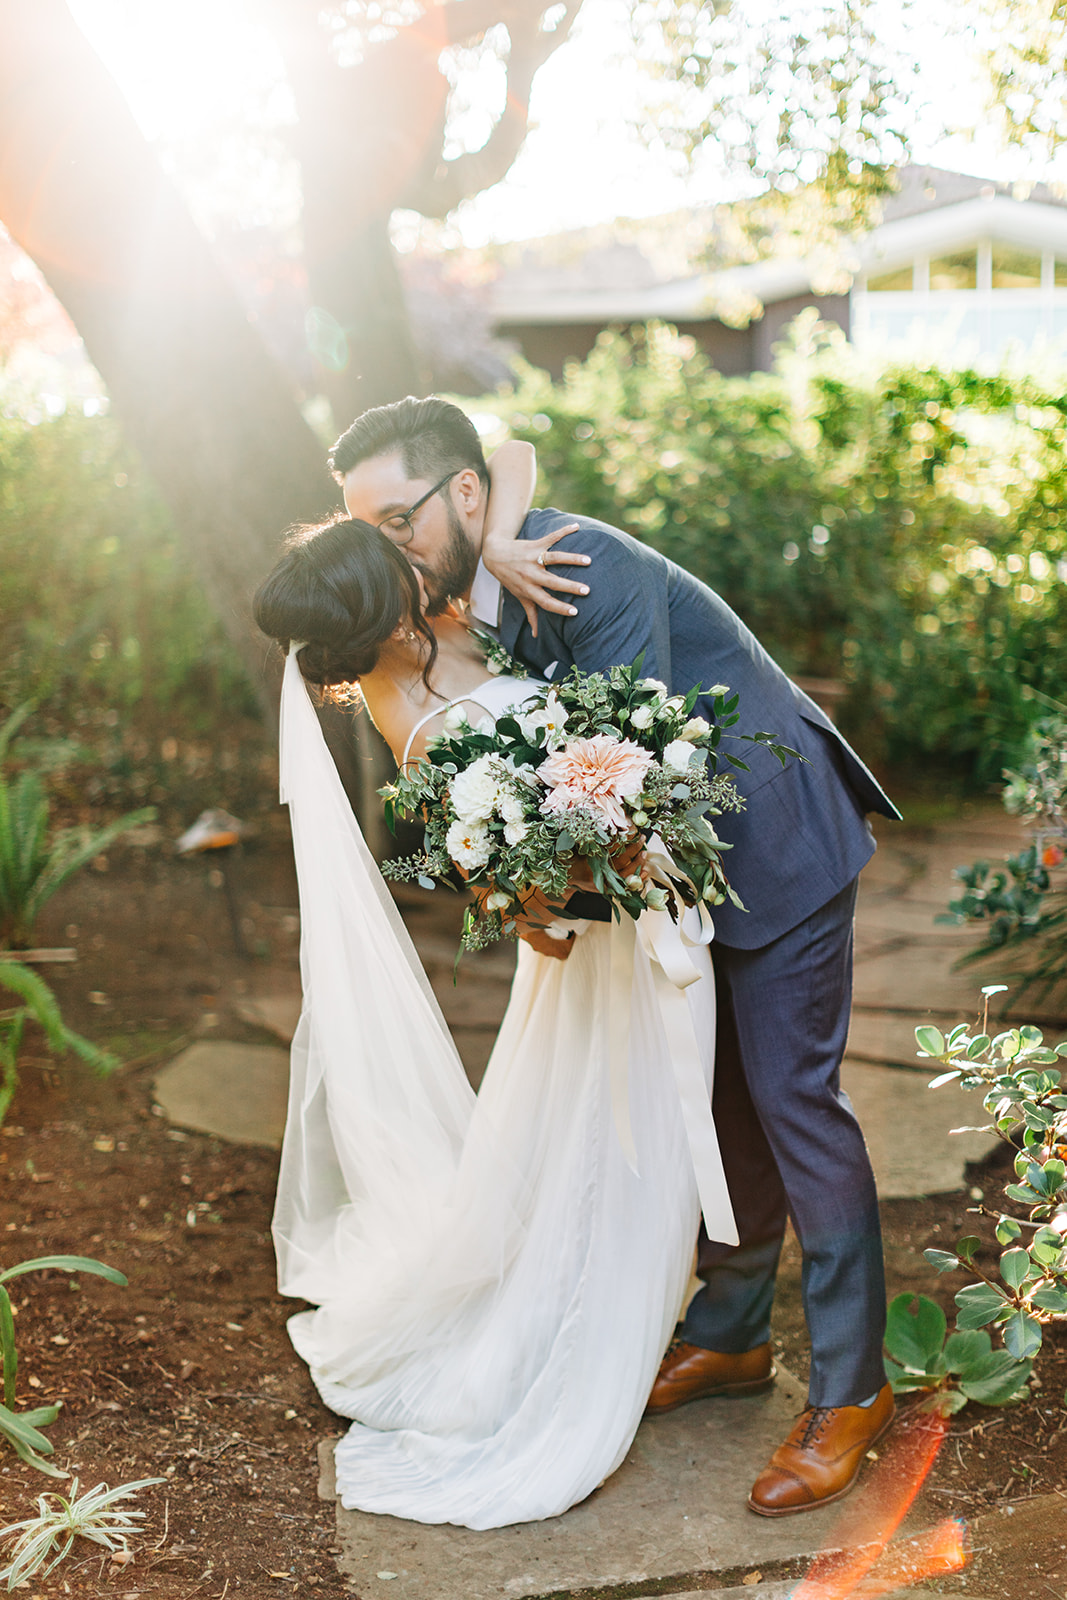 Los-Altos-History-Museum-Wedding_Orange-County-Wedding-Photographer_Clarisse-Rae-Photo-Video_77